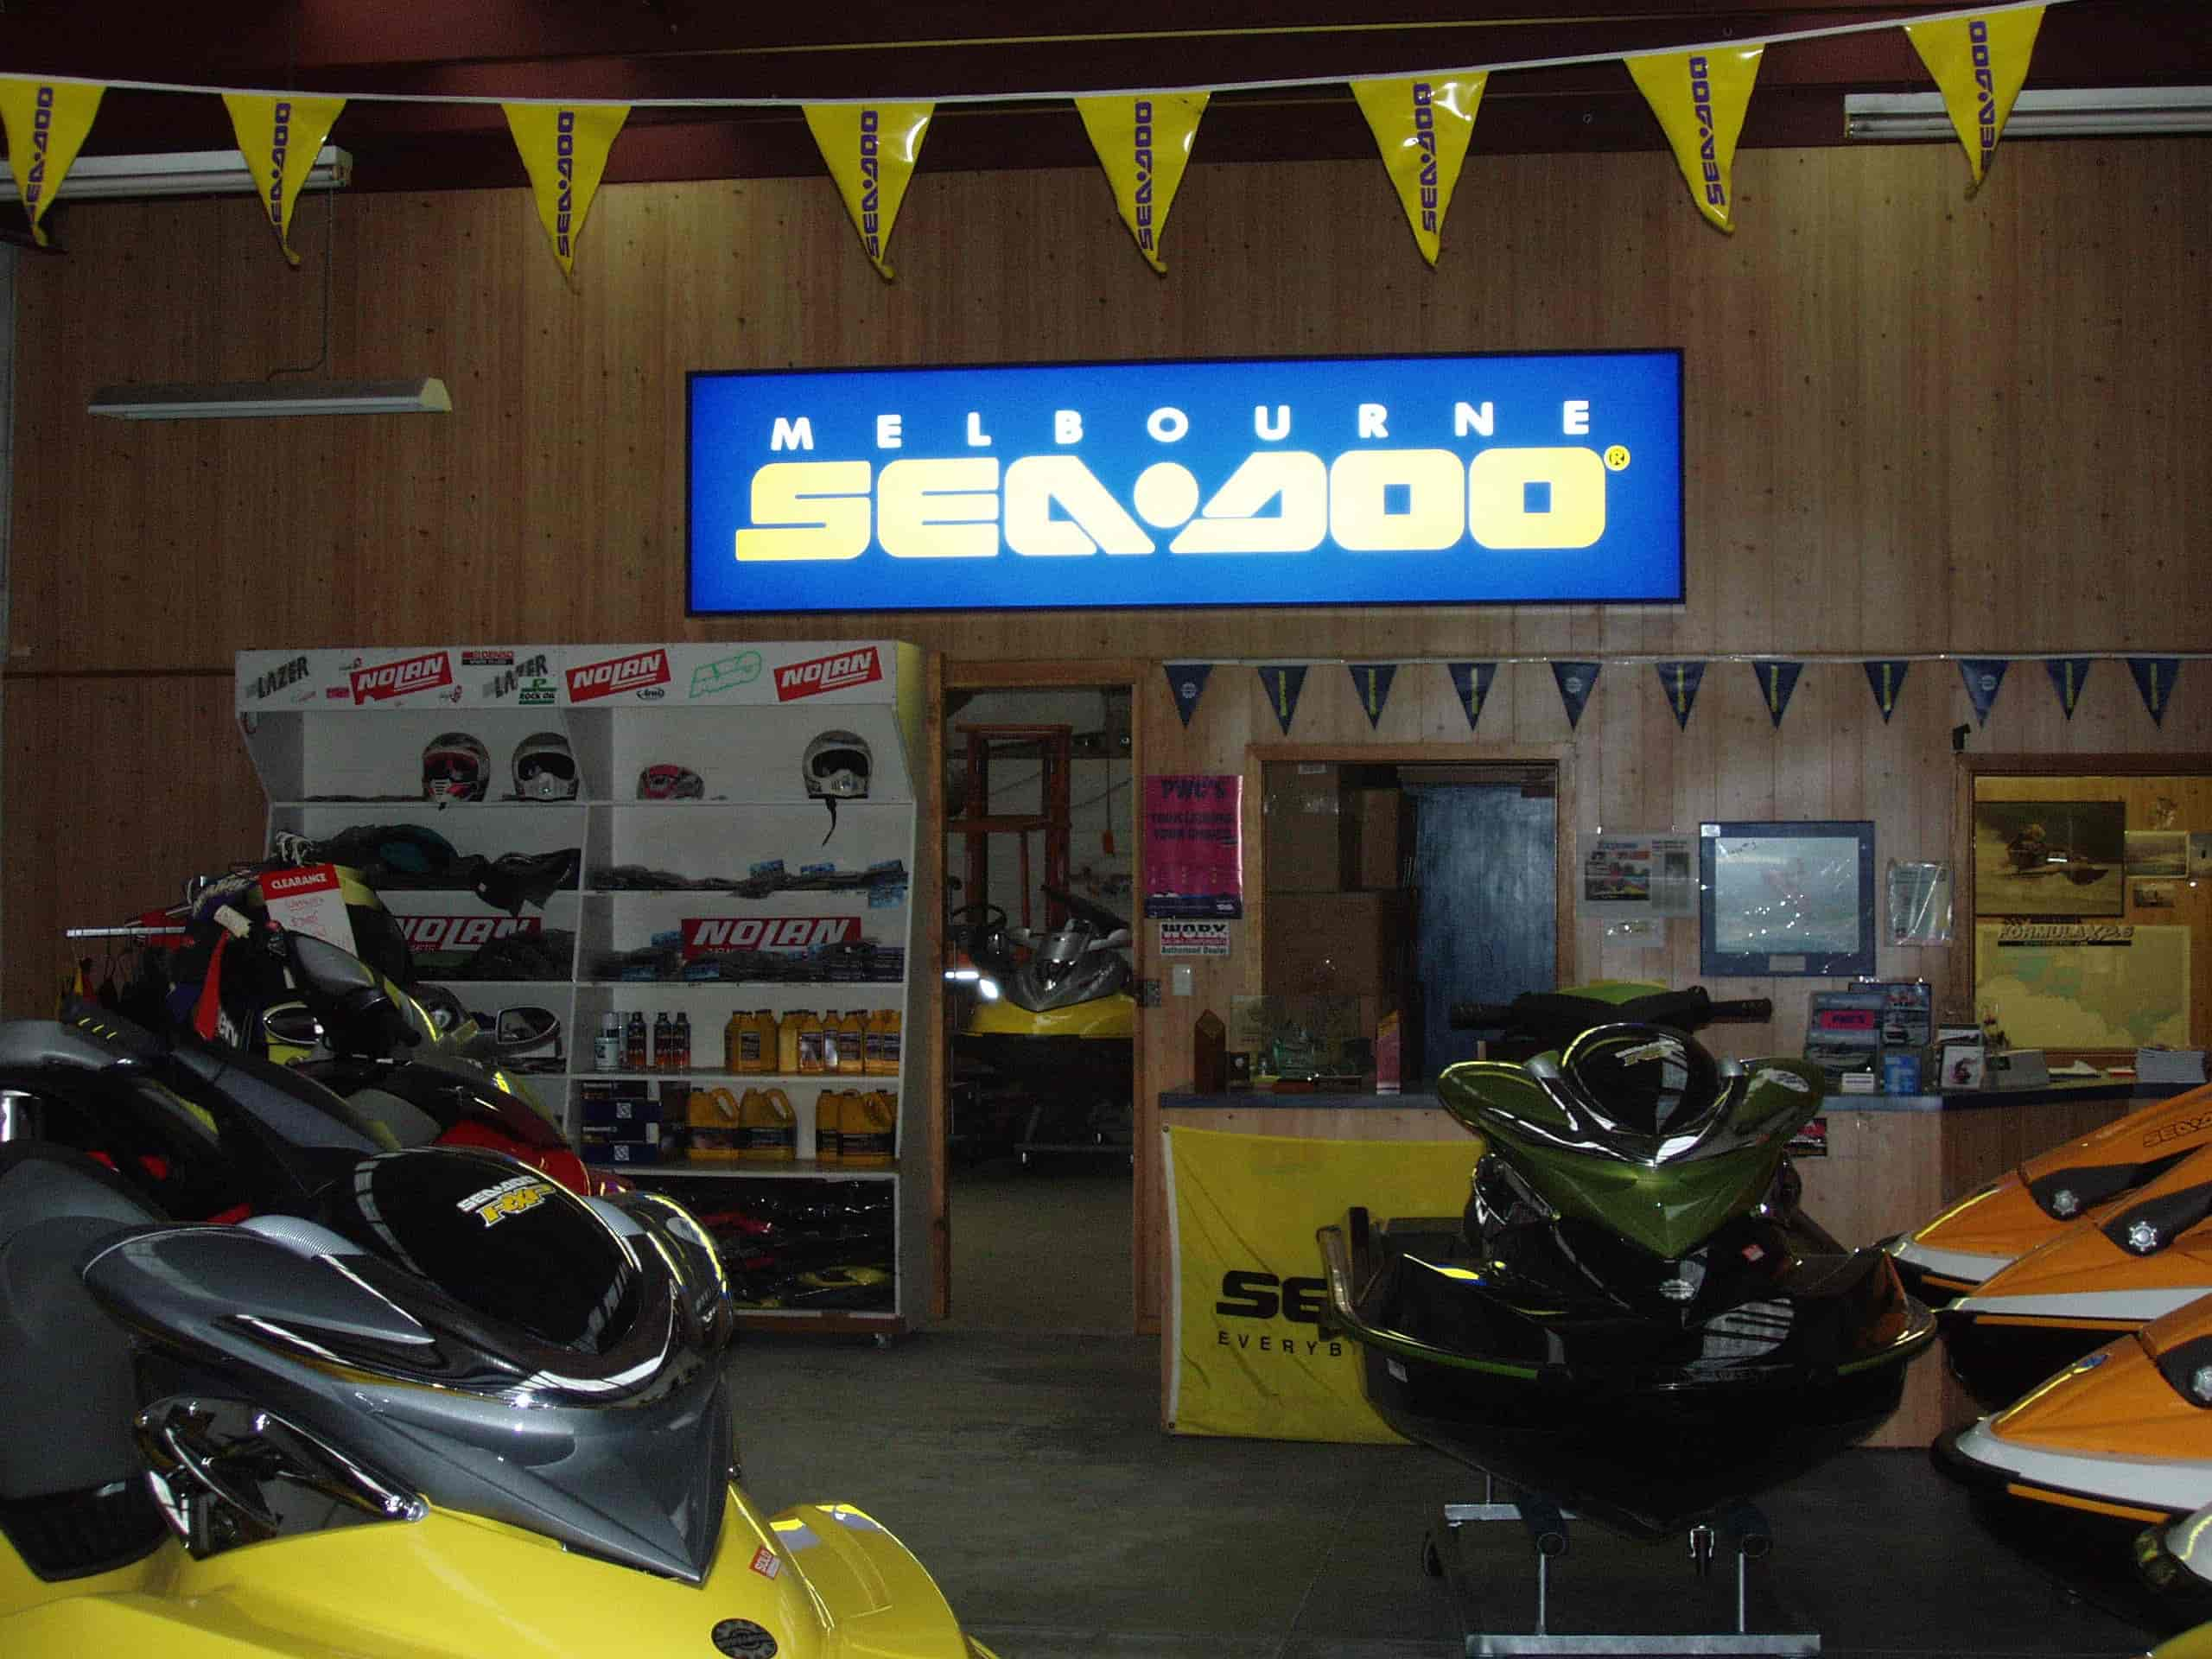 illuminated signs indoor Sea Doo